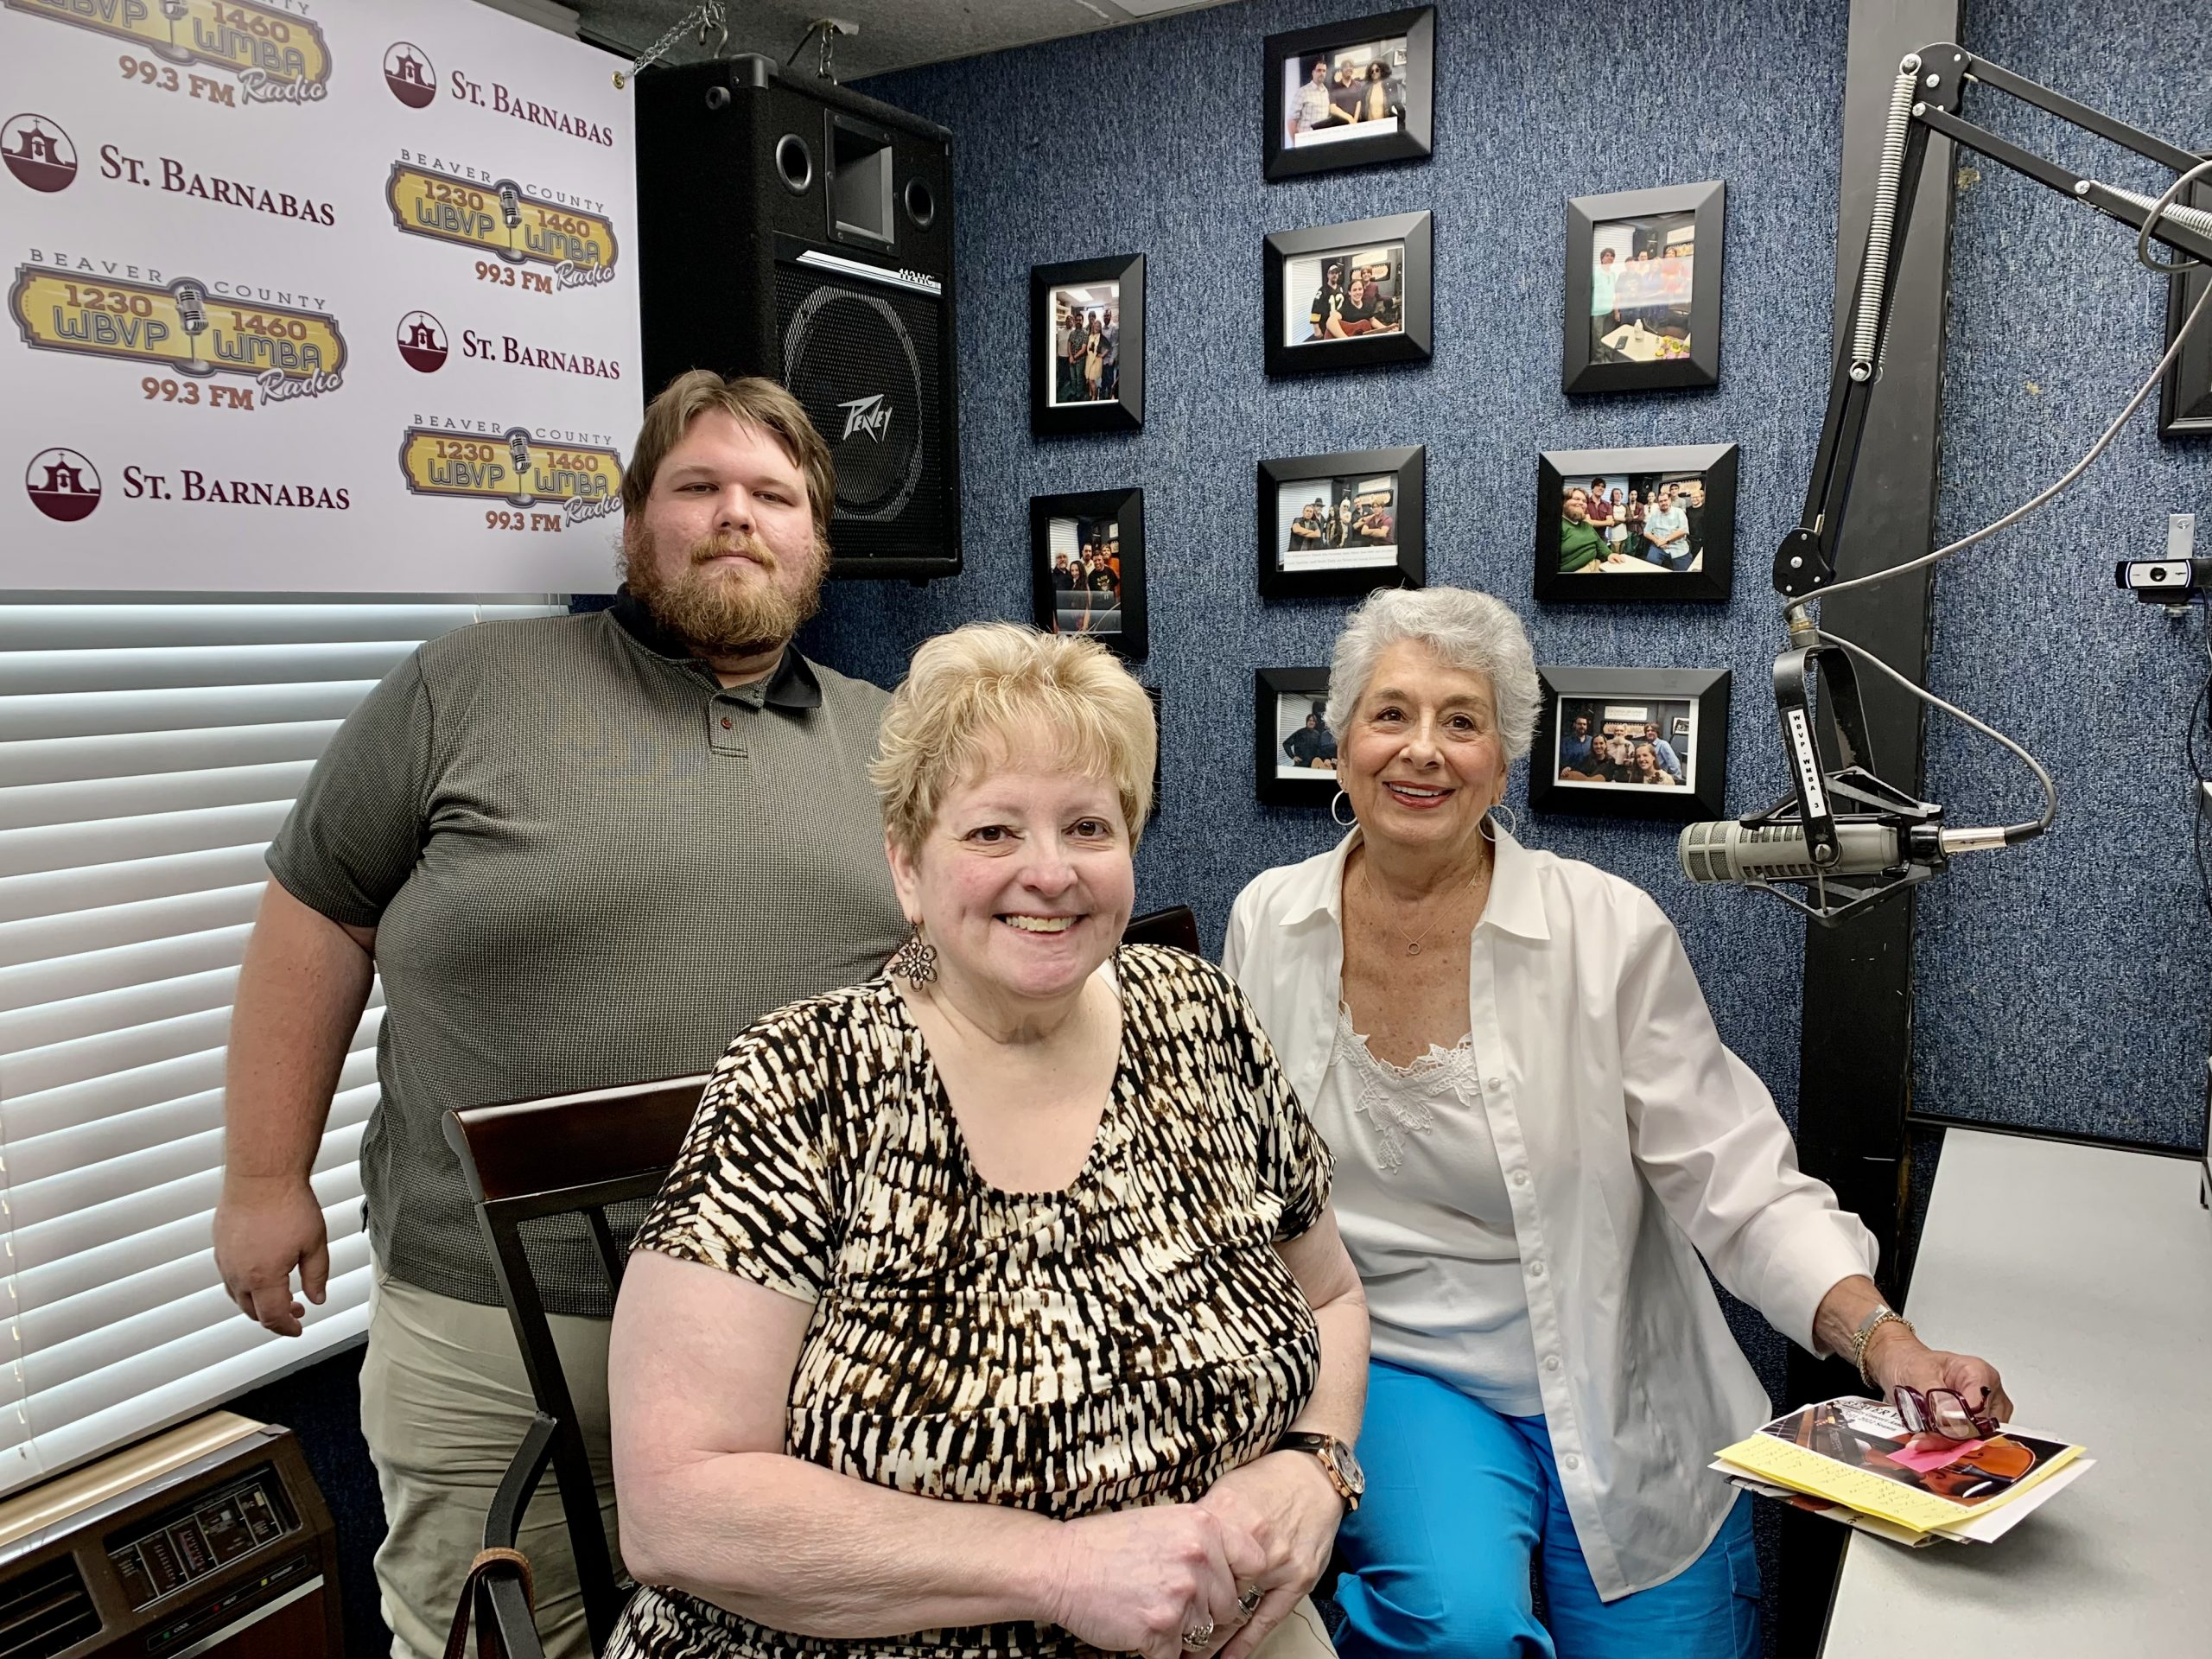 Co-Presidents Rhonda Ficca and Jean Macaluso of the Beaver Valley Community Concert Association on WBVP-WMBP on the morning show with Host Matt Drzik 7-29-21